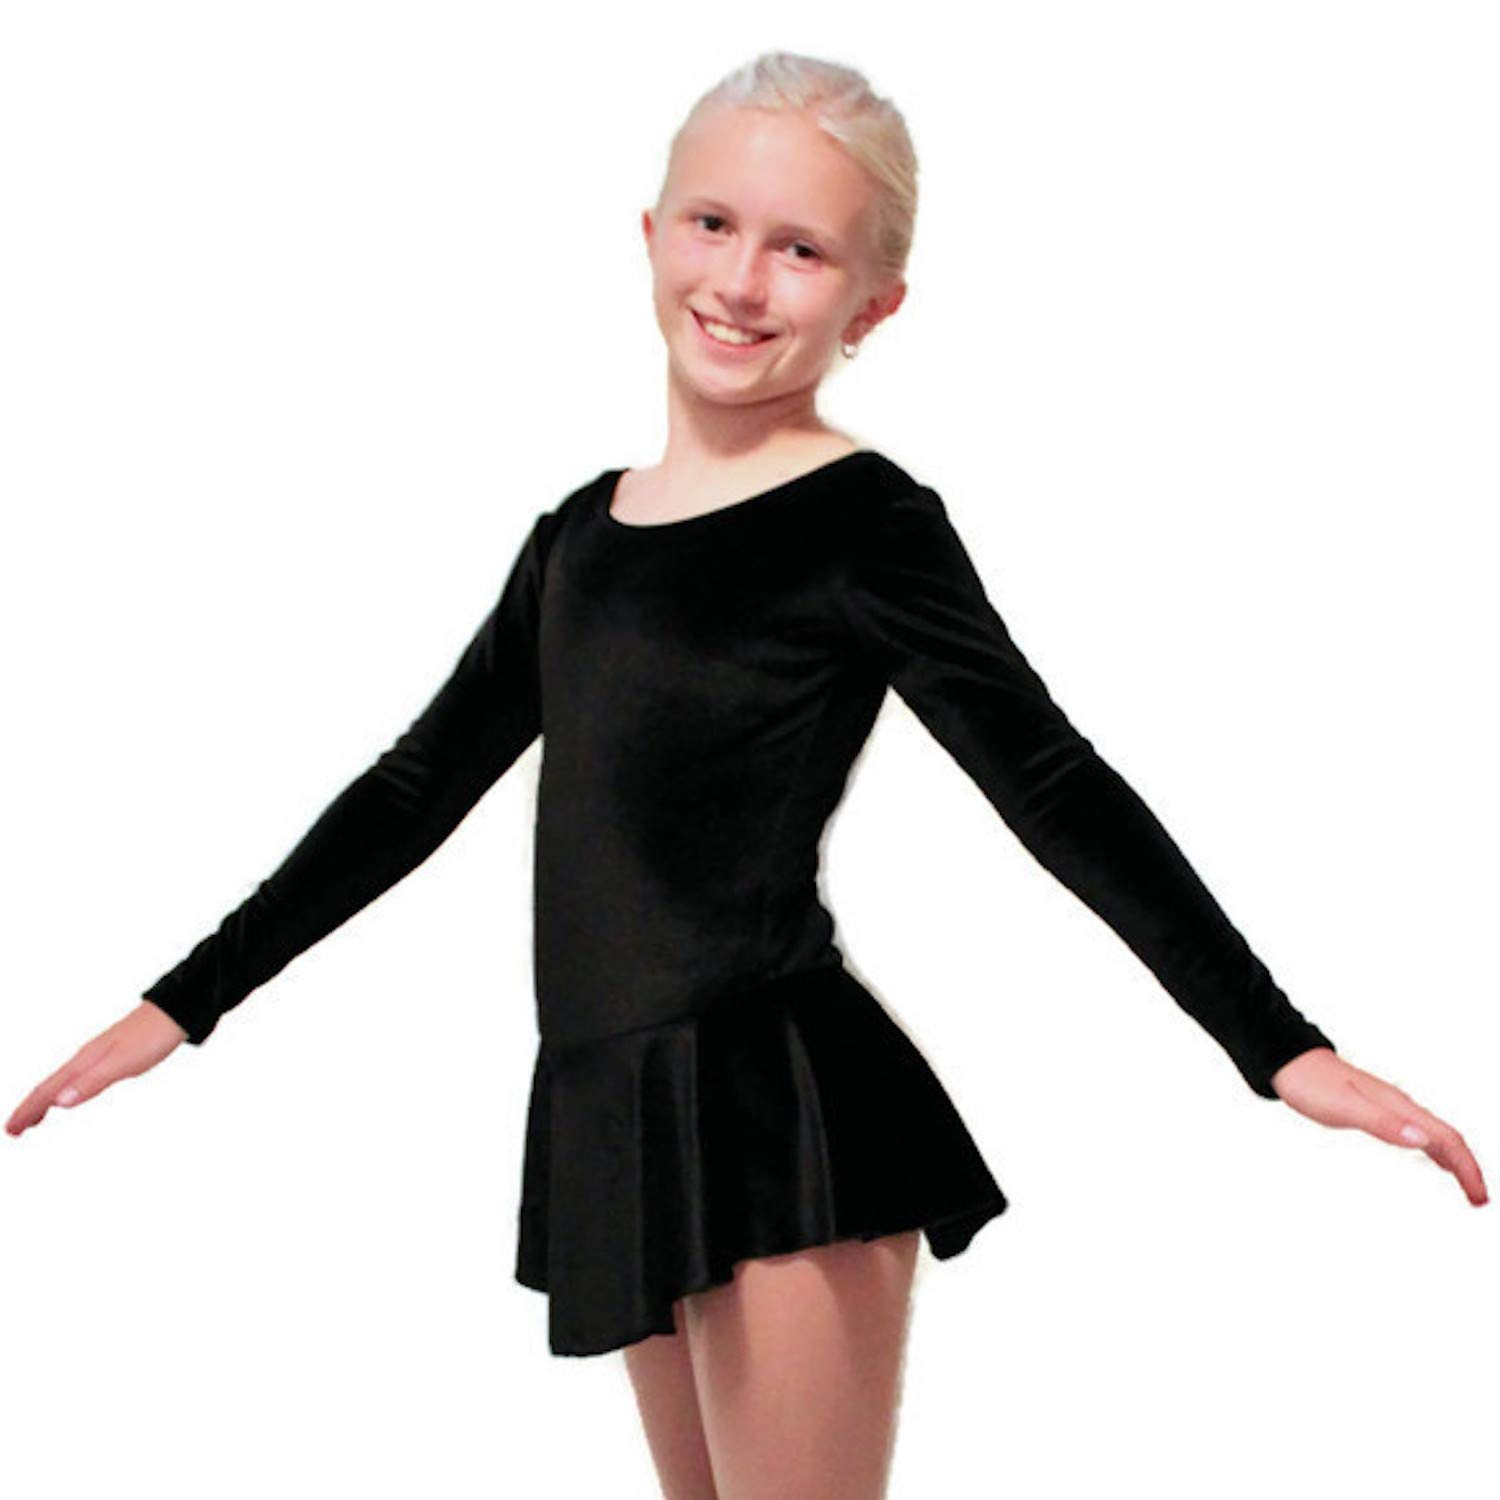 CRS Cross Youth Figure Skating Dress Practice Competition Test Examination (Child -Youth)